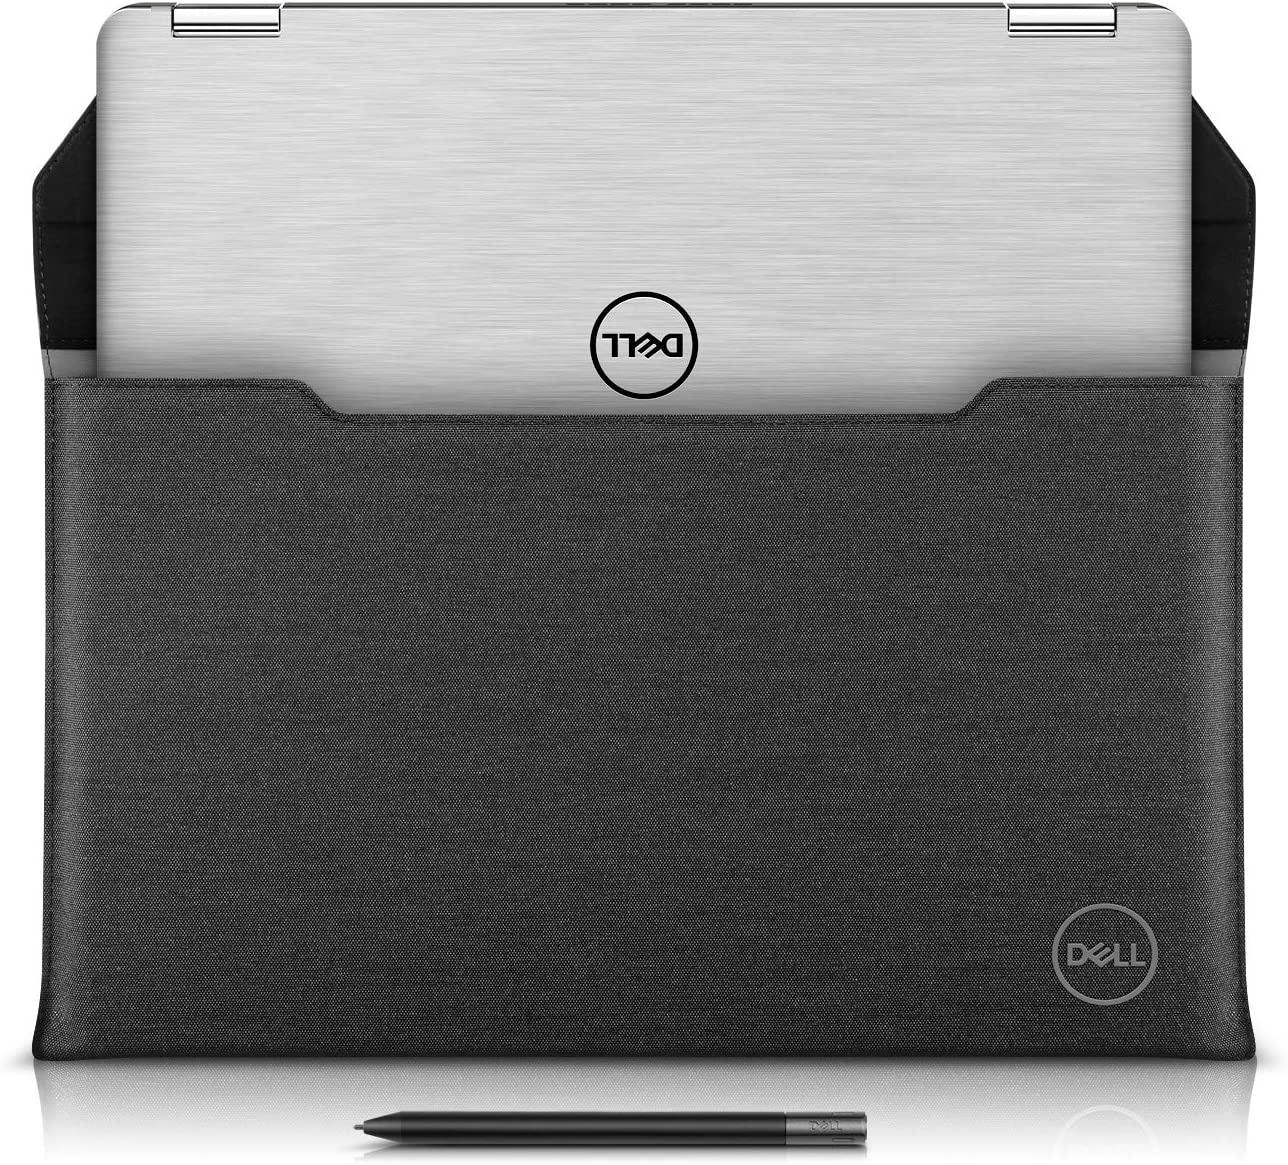 PE1420V has a Stylish and Contemporary Sleeve Design and Offers Sturdy Protection from for Your Dell Latitude 7400 2-in-1 When You are on-The-go Dell Premier Sleeve 14